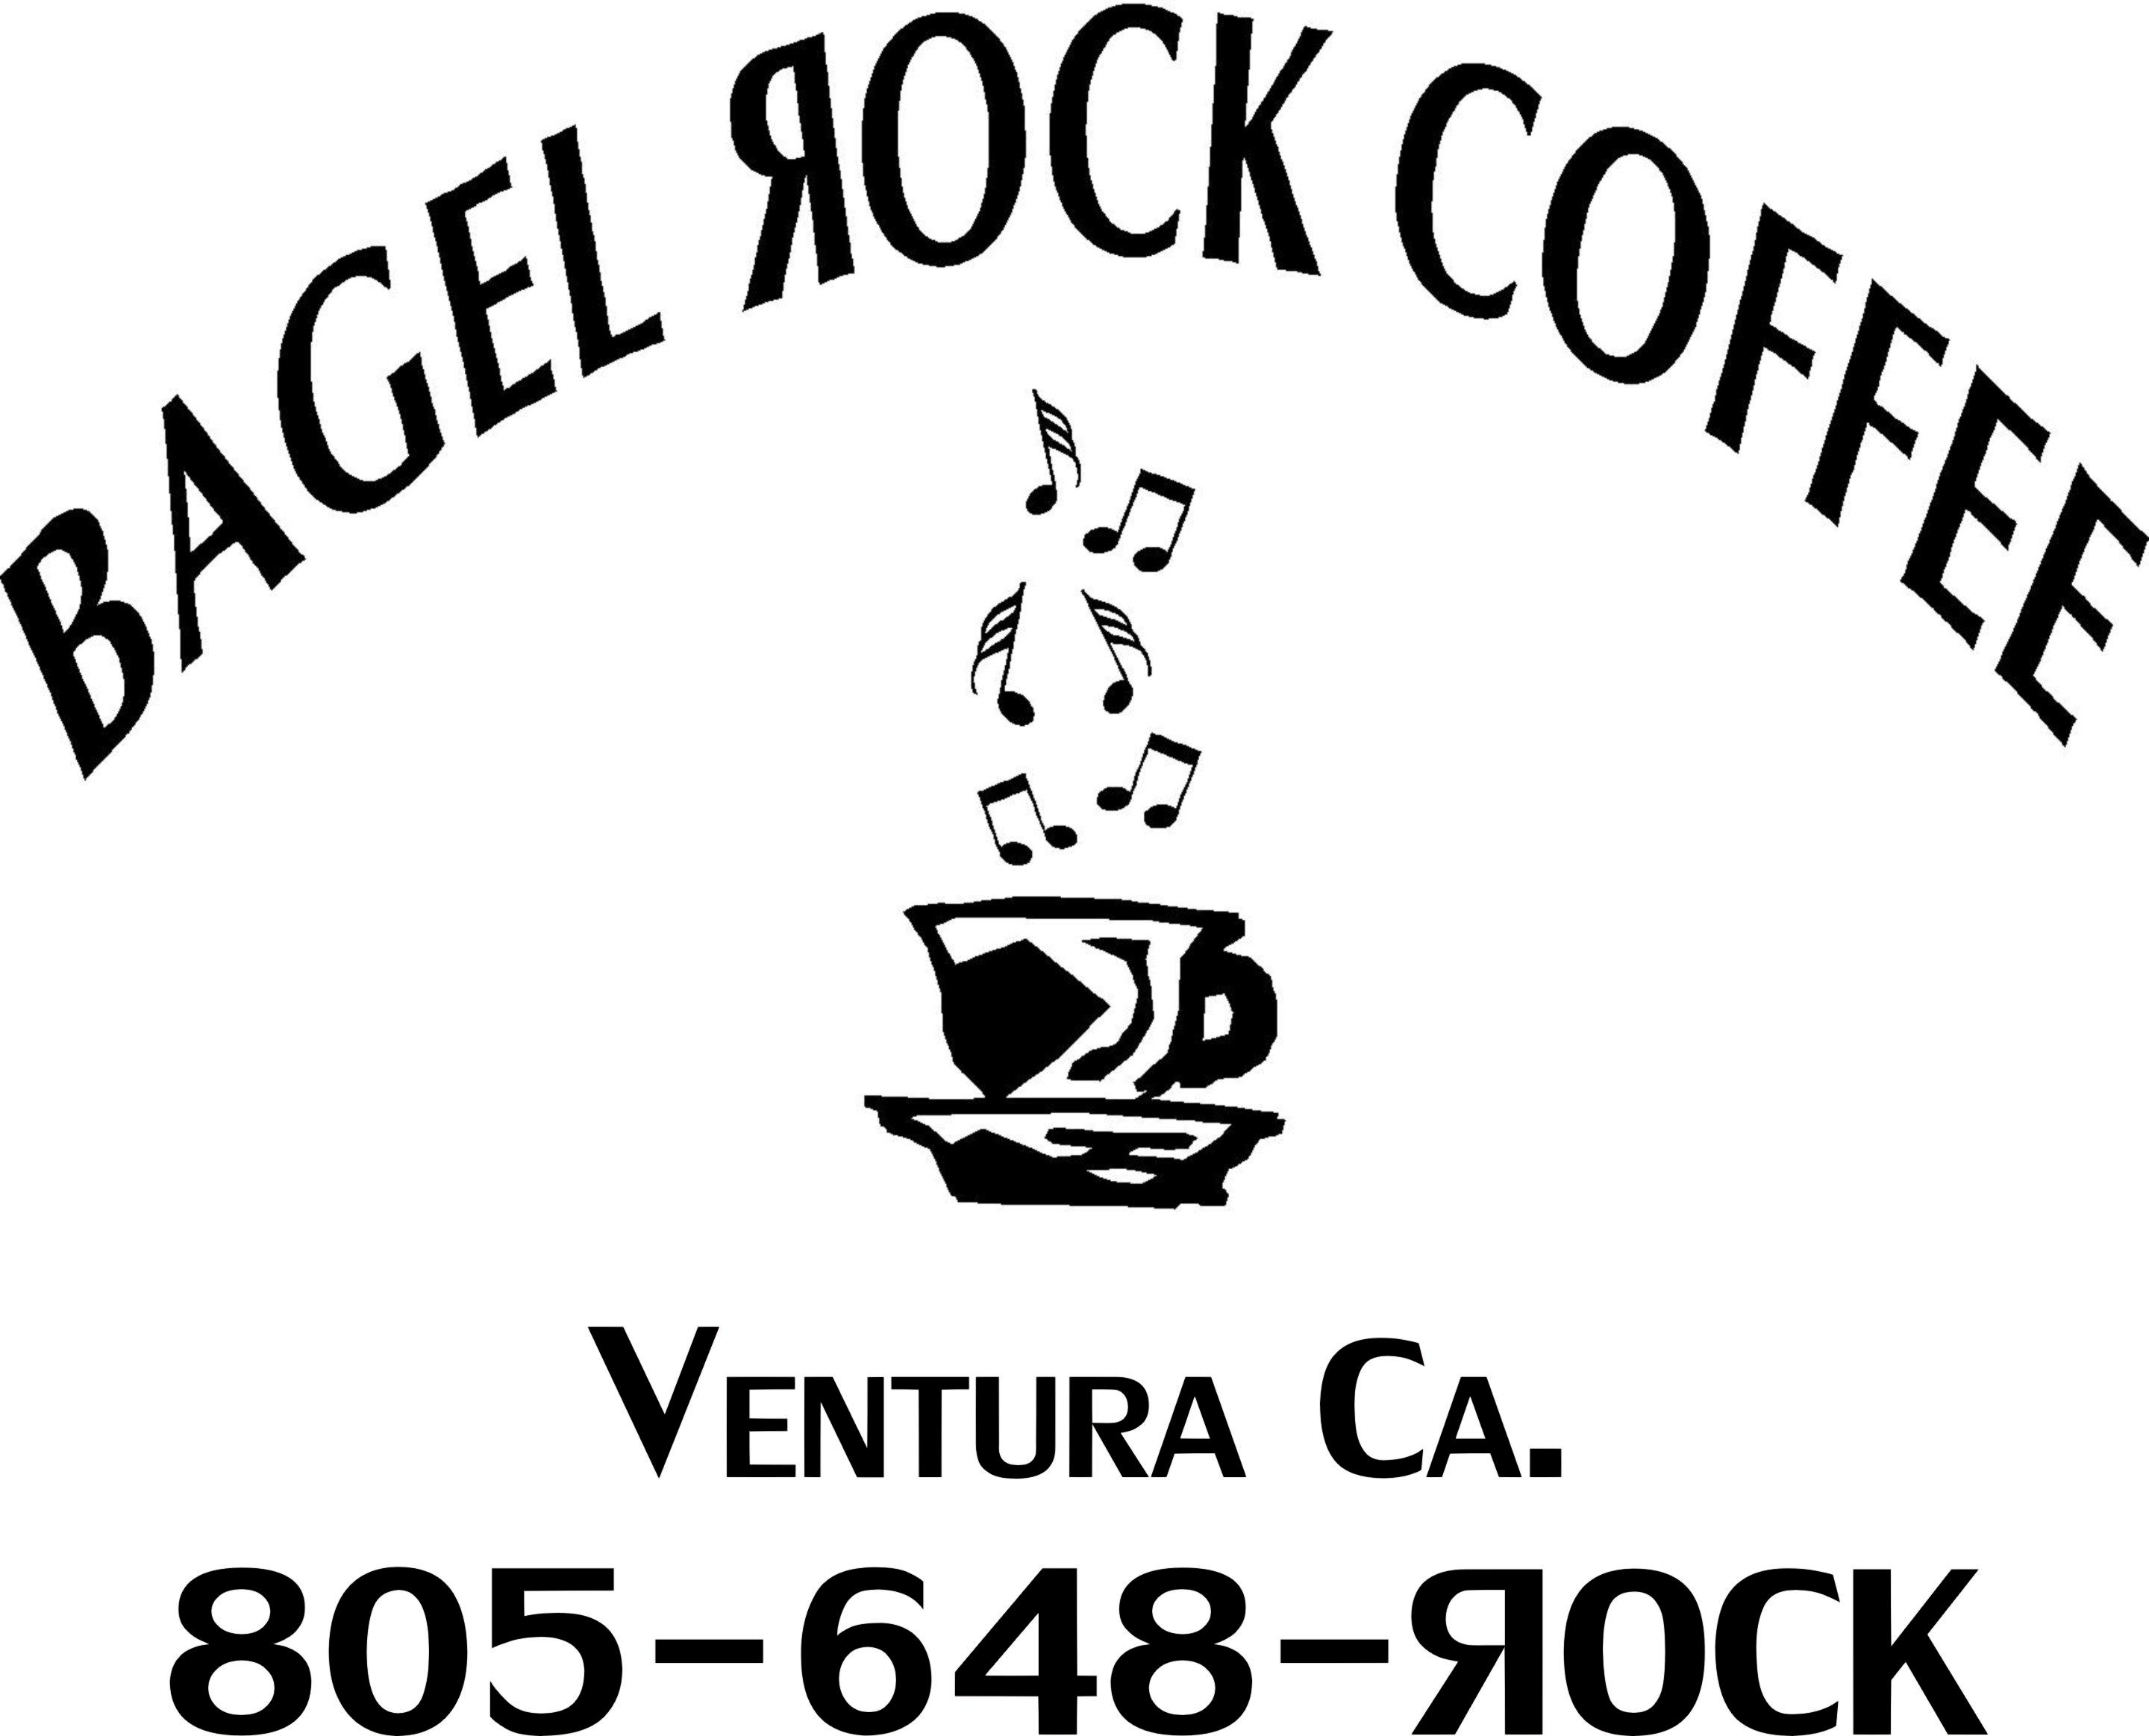 Bagel Rock Coffee